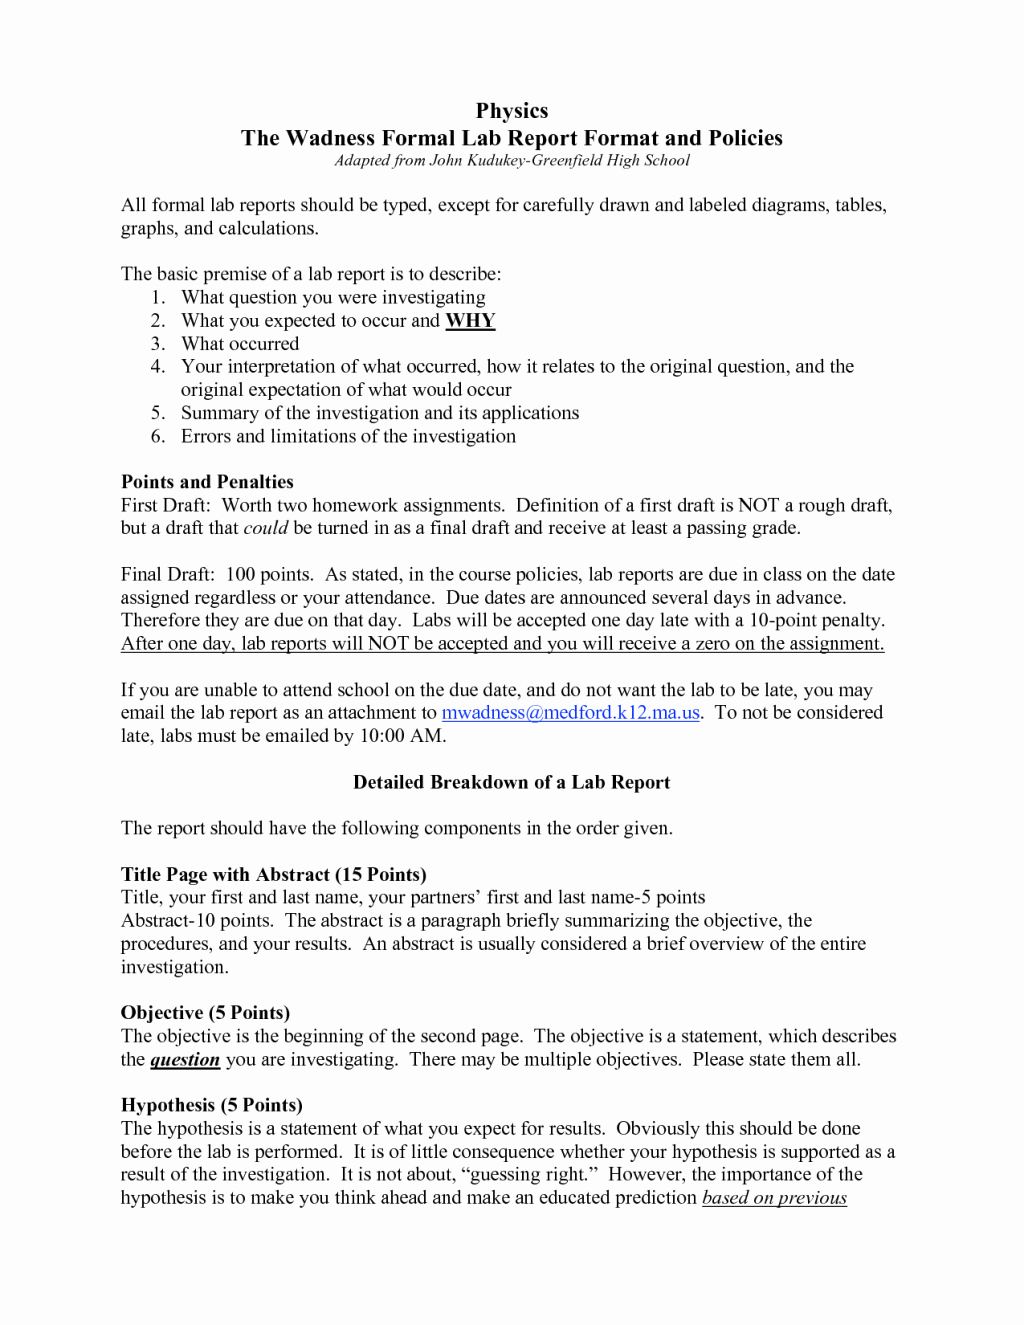 Formal Lab Report Template New formal Lab Report Template Physics Biological Science